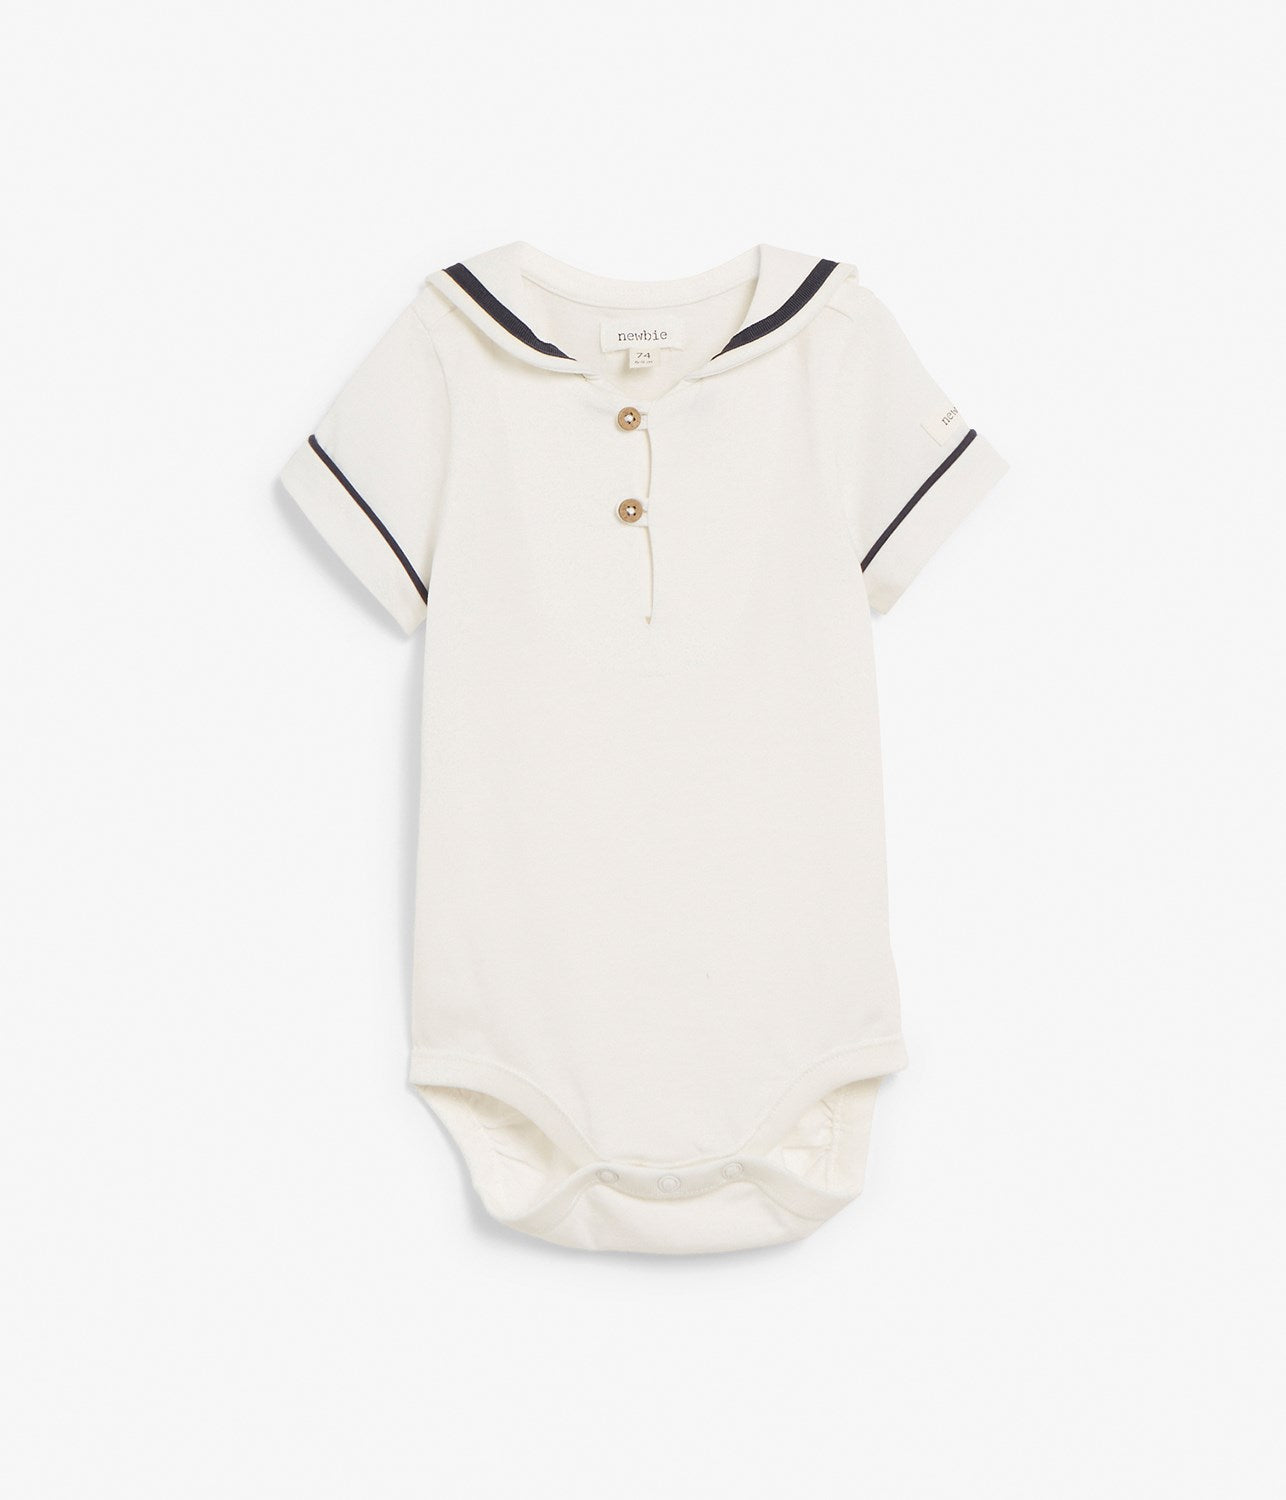 Baby body with sailor collar